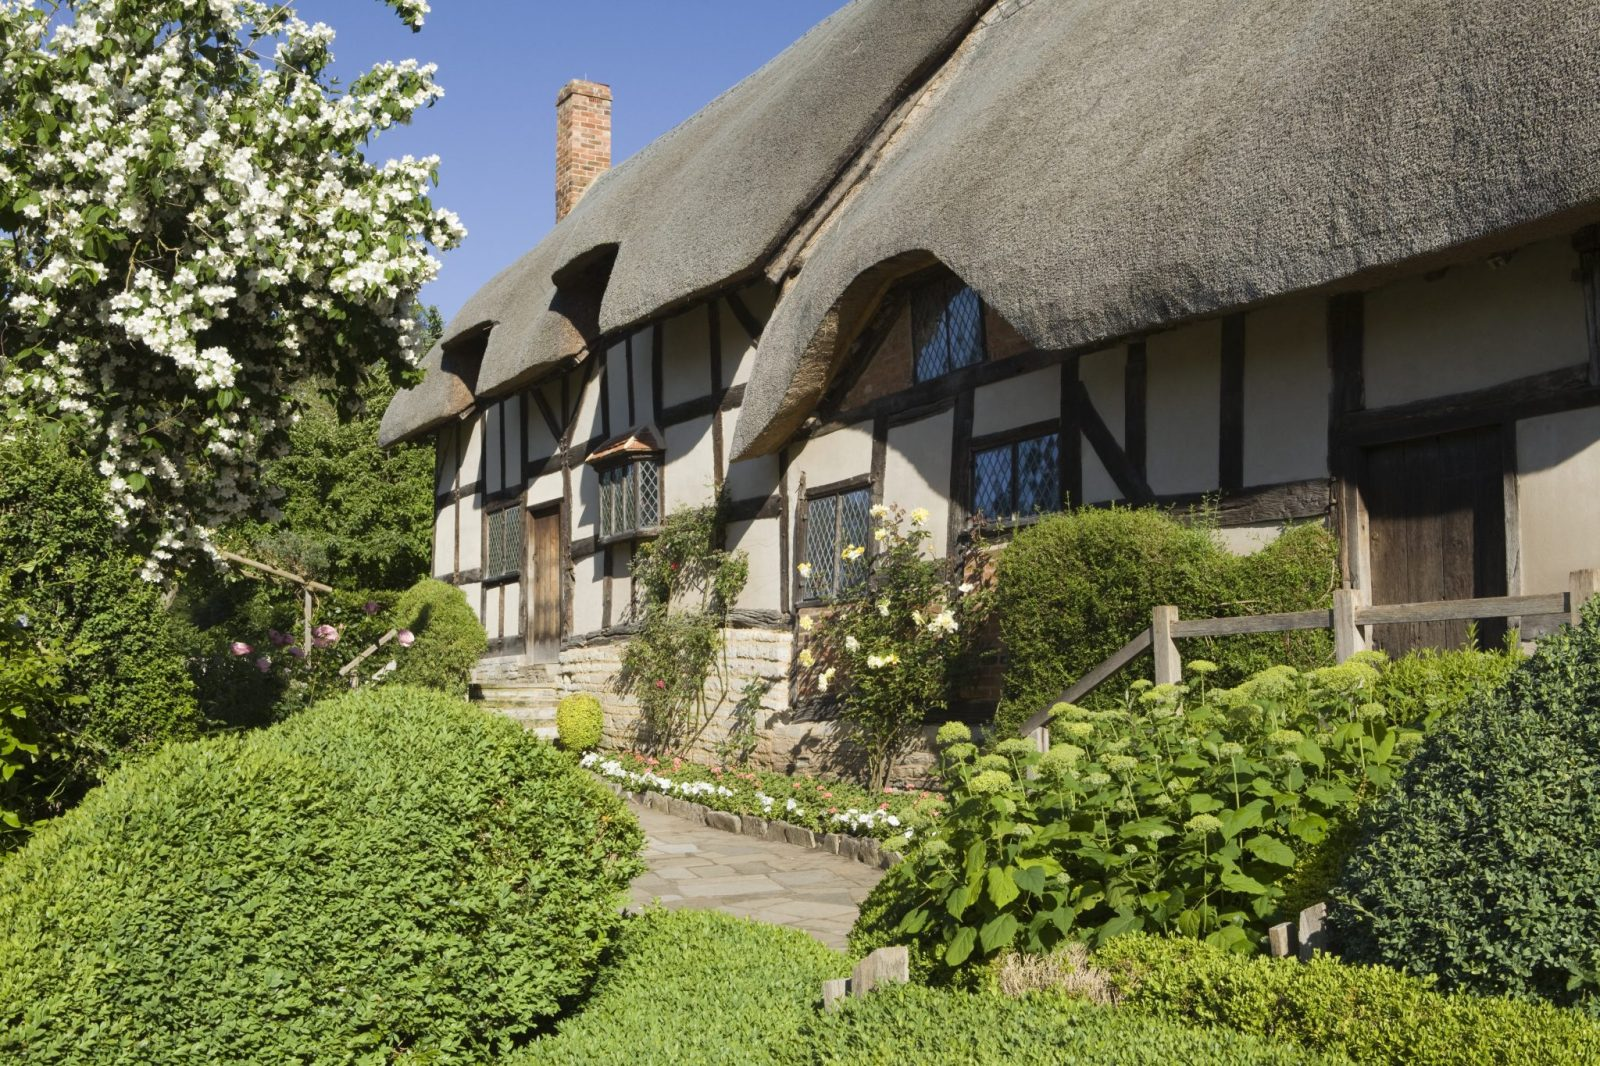 Anne Hathaway's Cottage and Gardens, Stratford-upon-Avon, UK. June 2014.